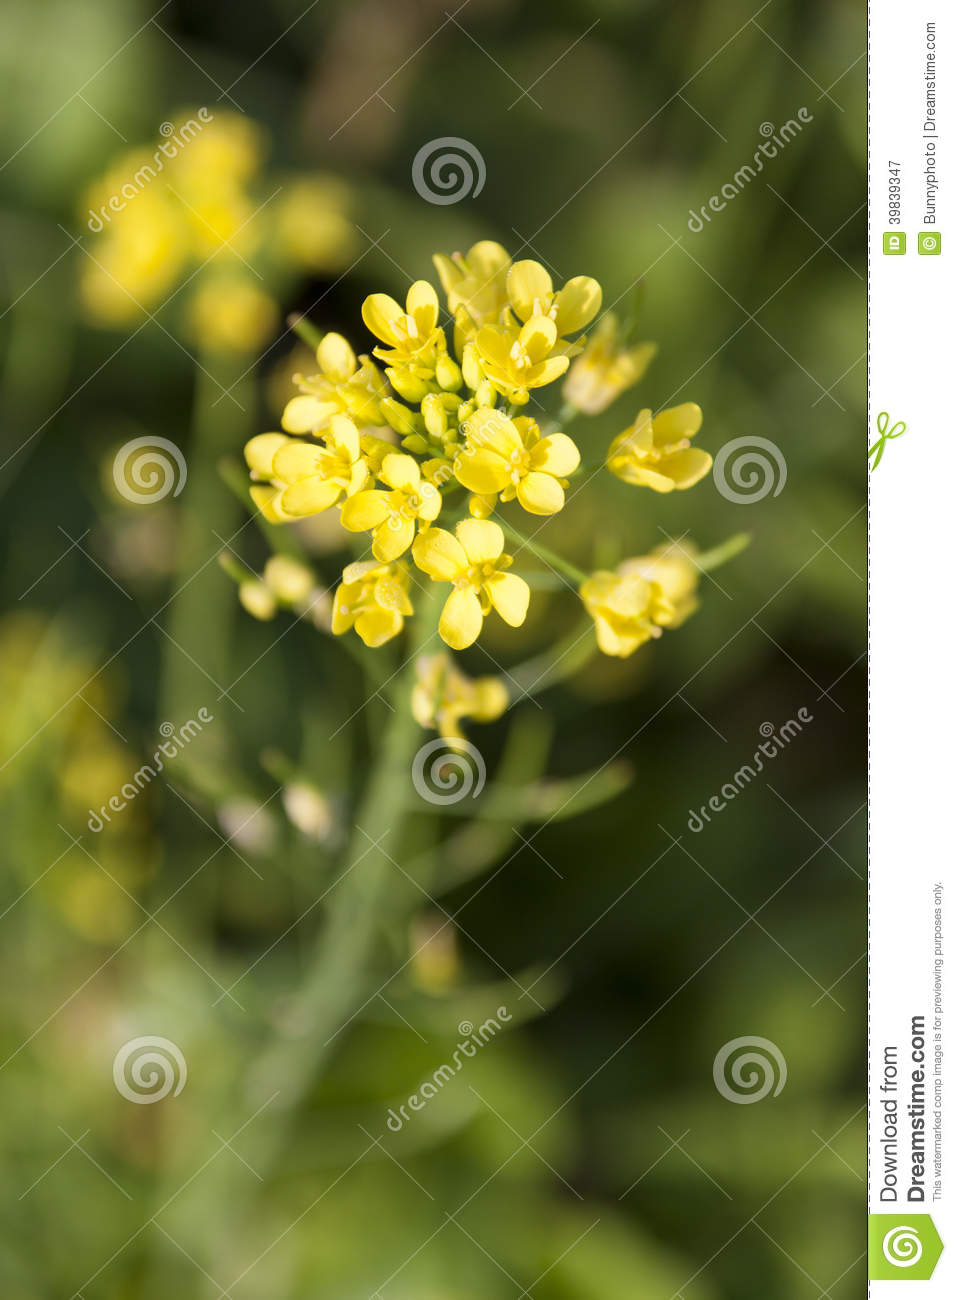 Vegetable flowers stock image image of agriculture green 39839347 vegetable flowers mightylinksfo